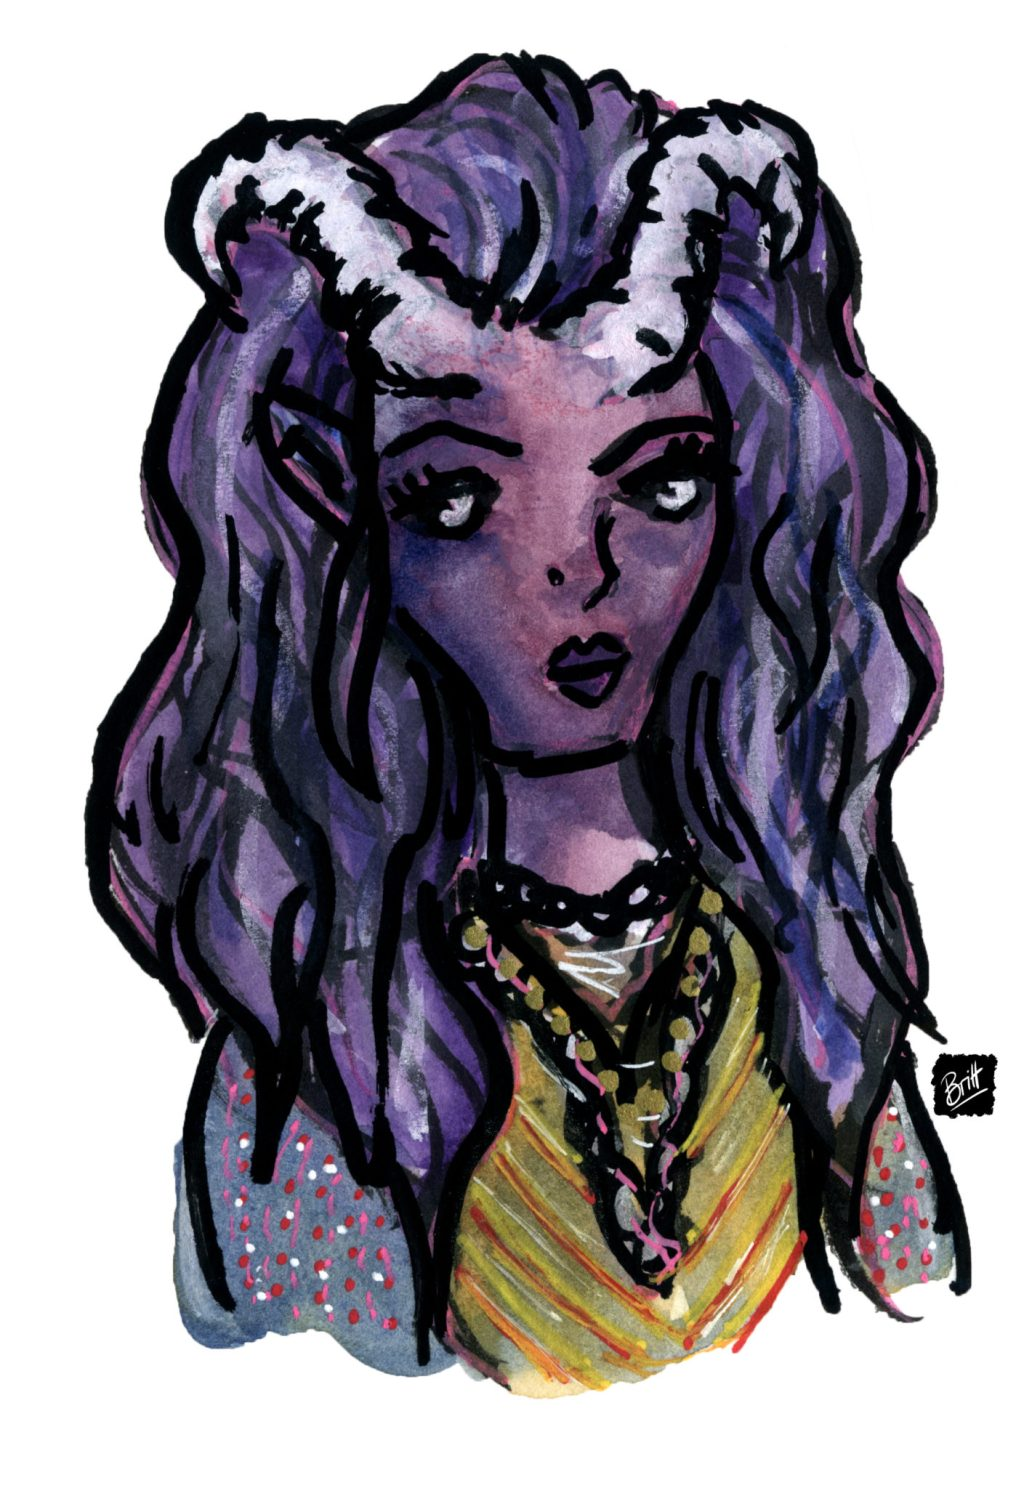 Baroness Whitehorn, a character from my D&D campaign, a tiefling with purple skin and white horns wearing a light silk dress in yellow.